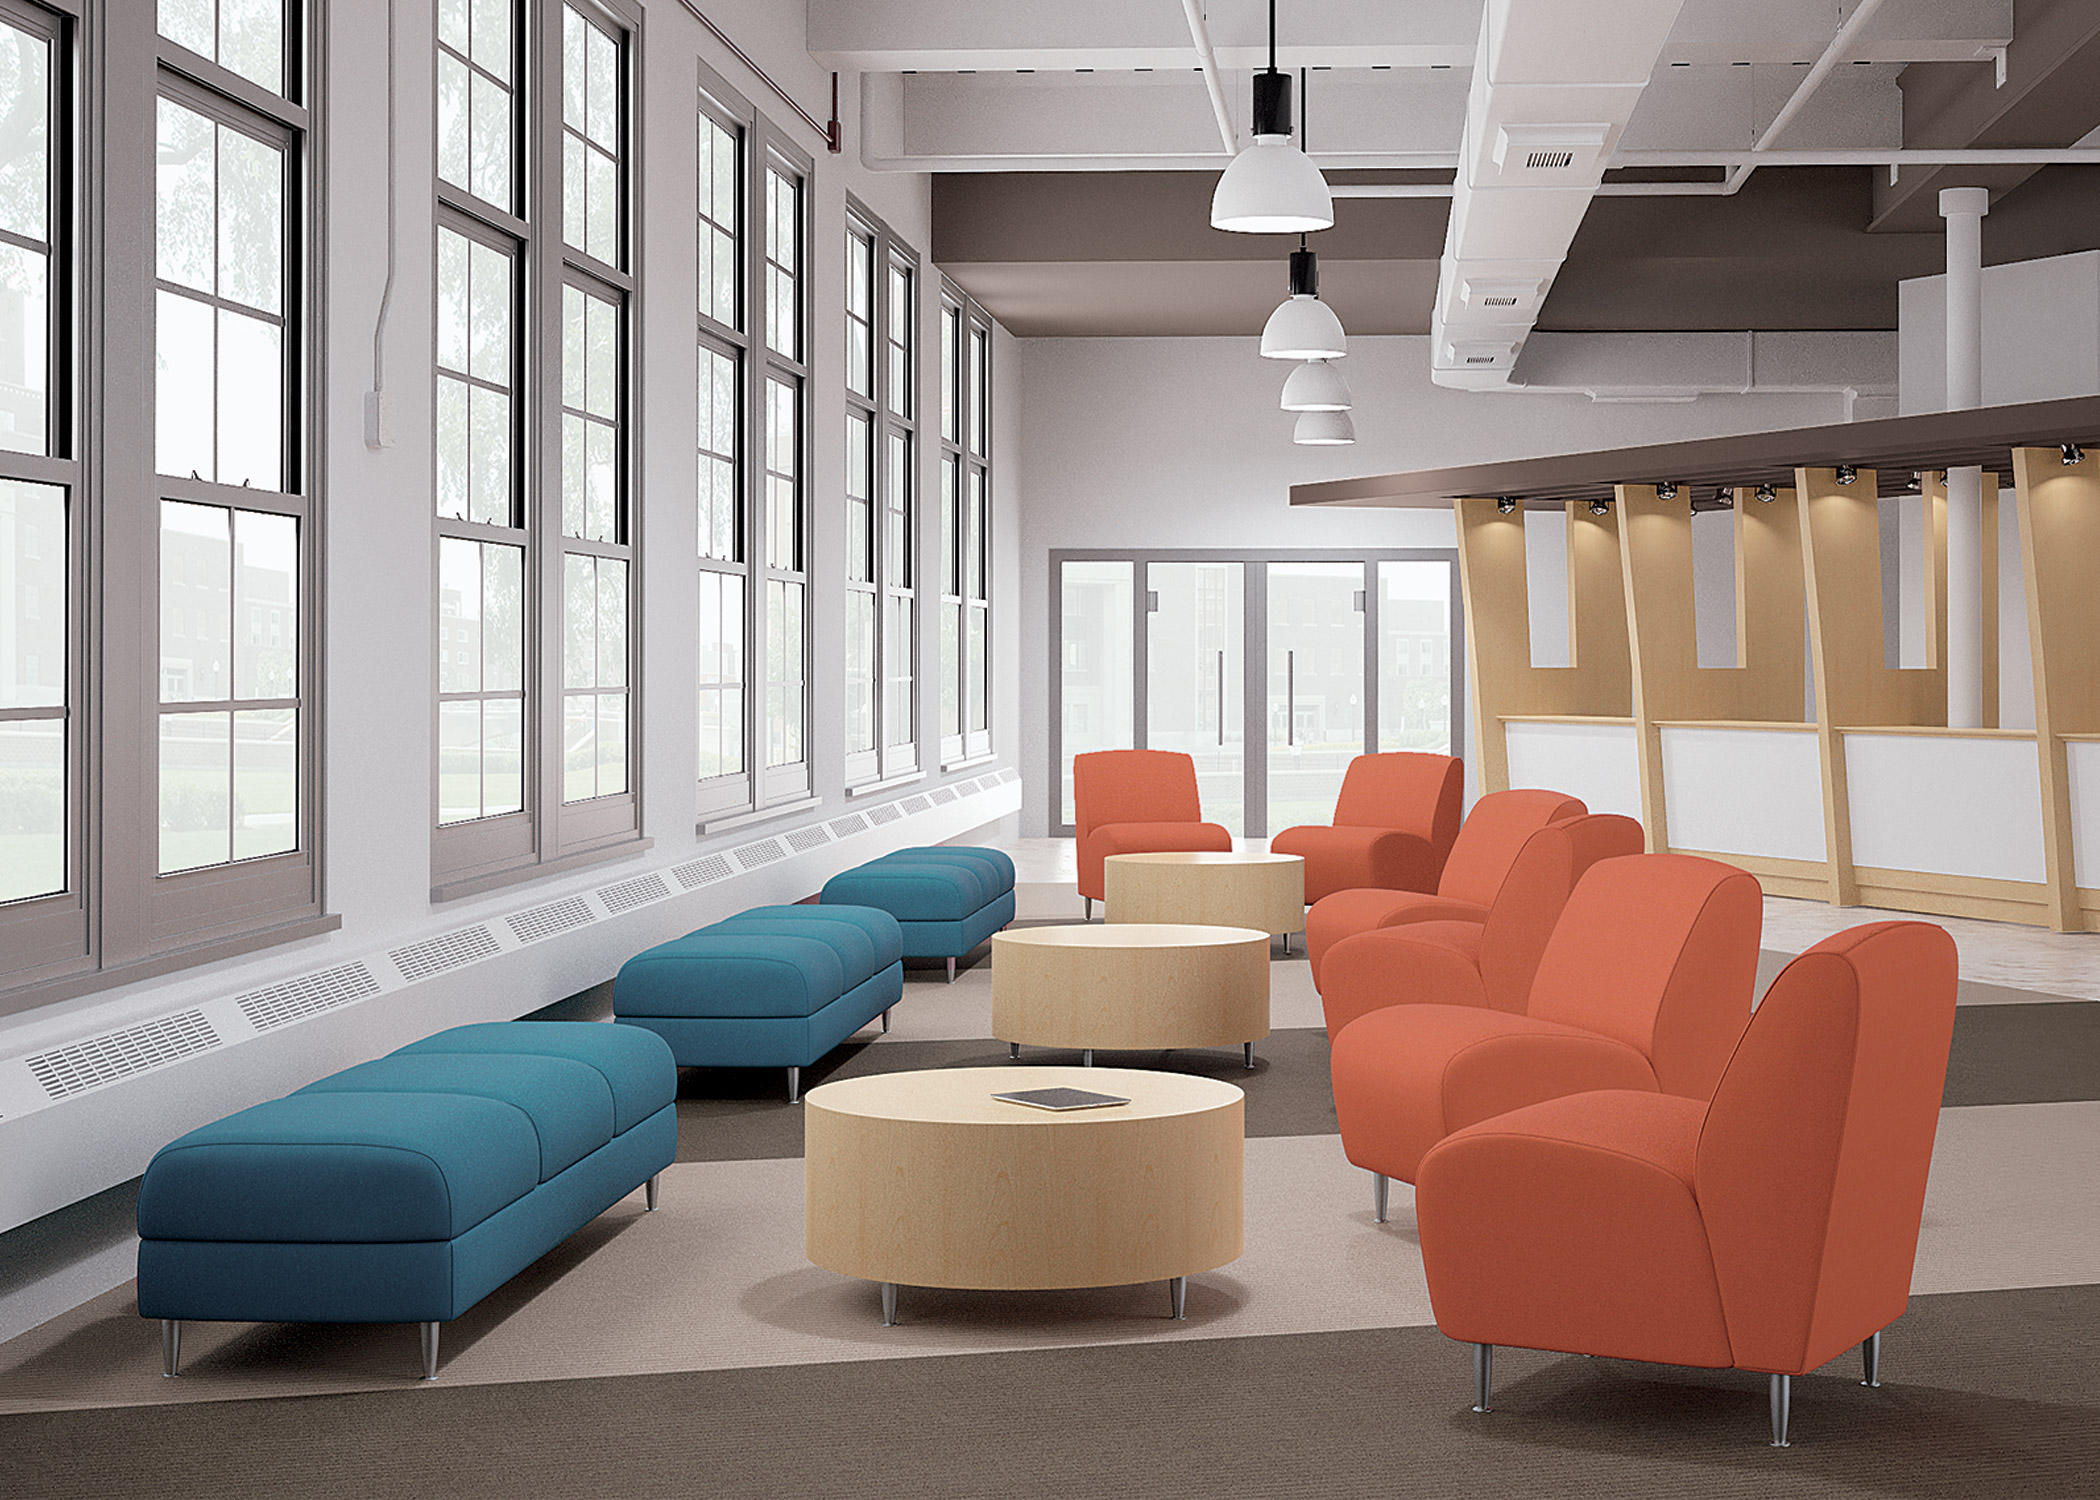 reno seating armchairs from national office furniture architonic rh architonic com national office furniture reno office furniture usa reno